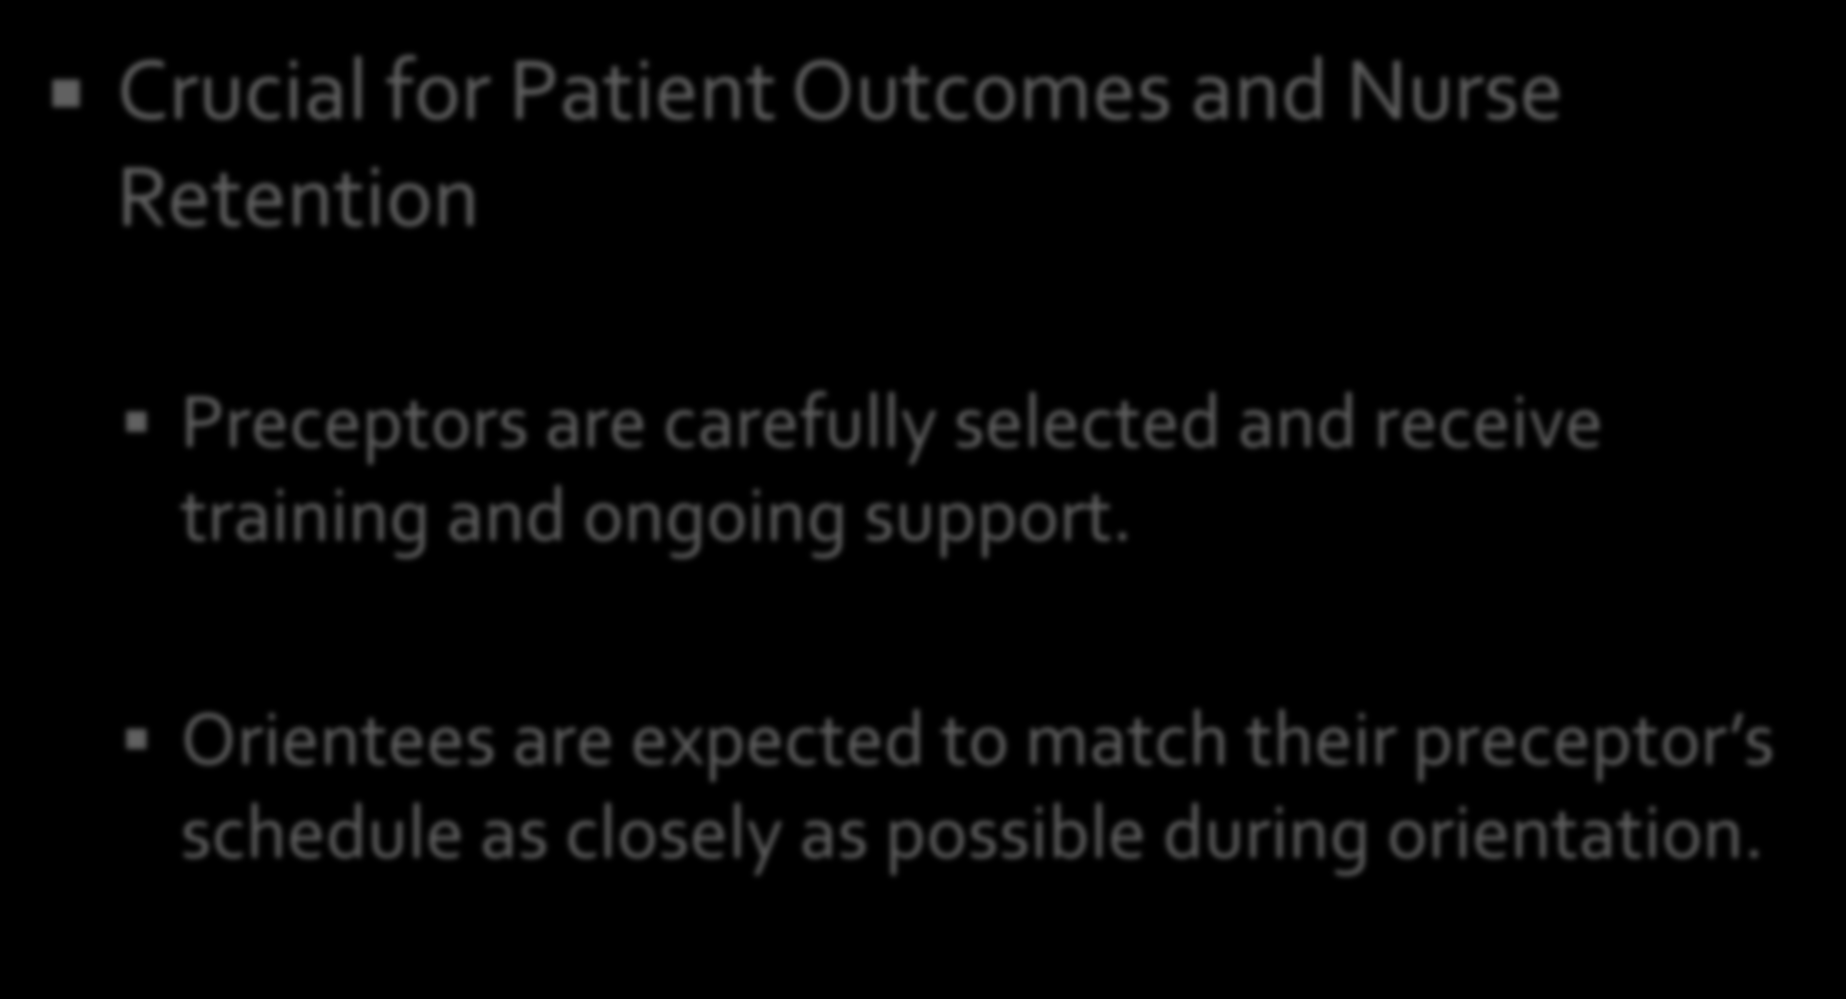 Crucial for Patient Outcomes and Nurse Retention Preceptors are carefully selected and receive training and